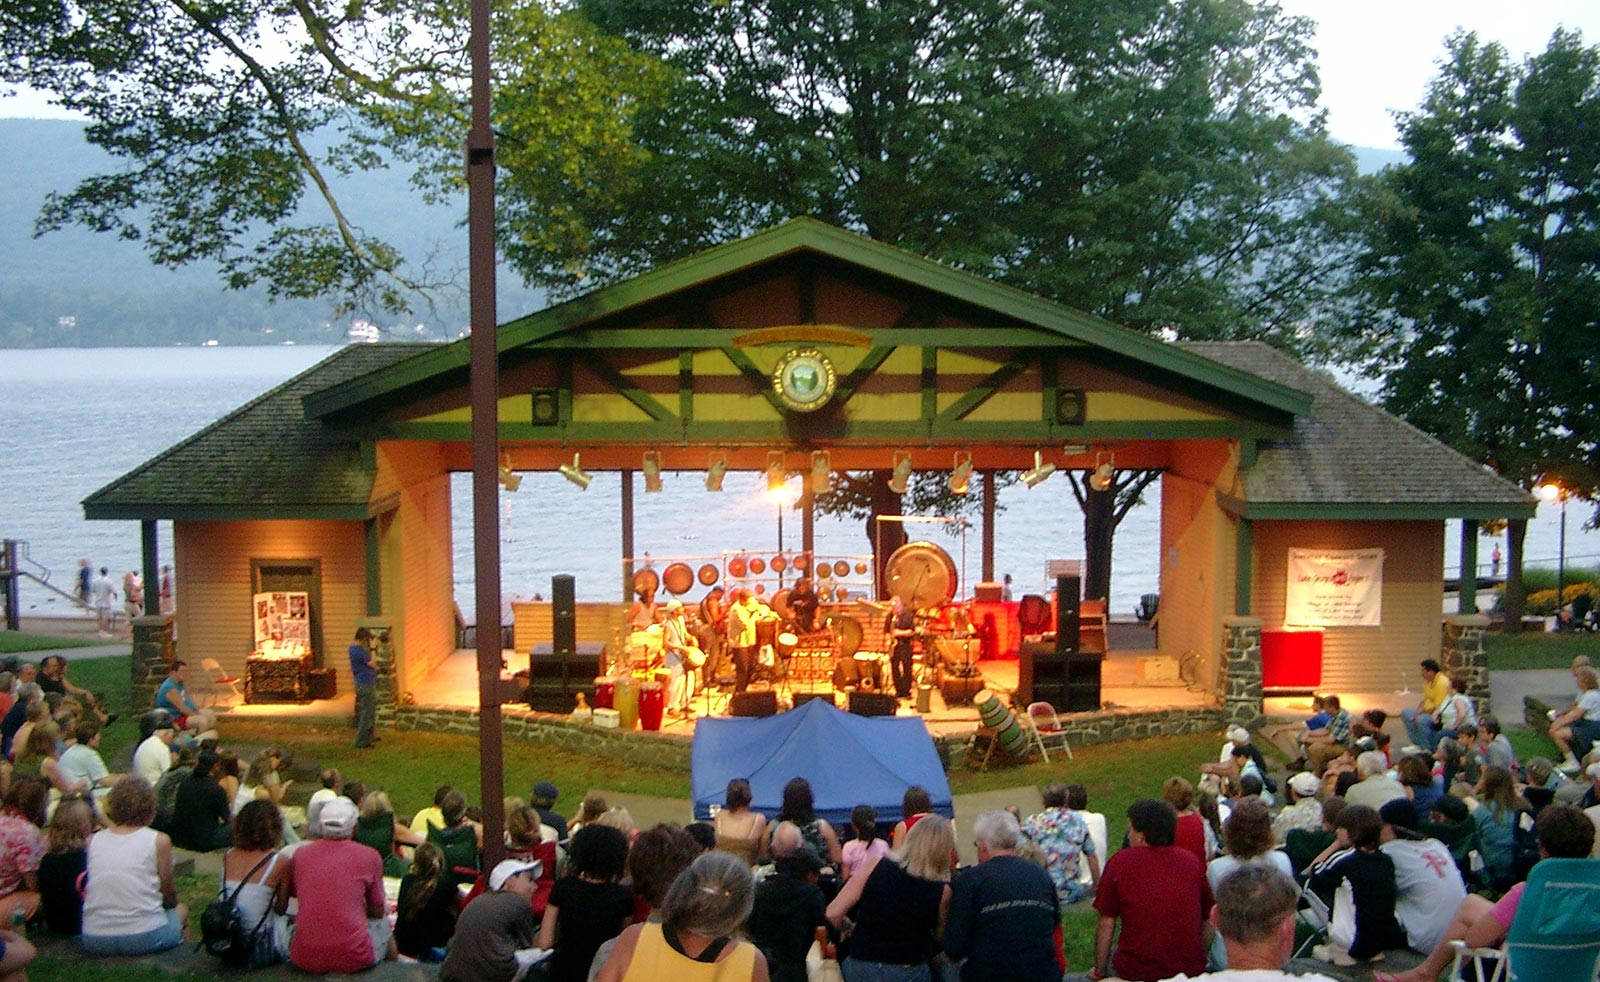 Band playing in Shepard Park in lake George